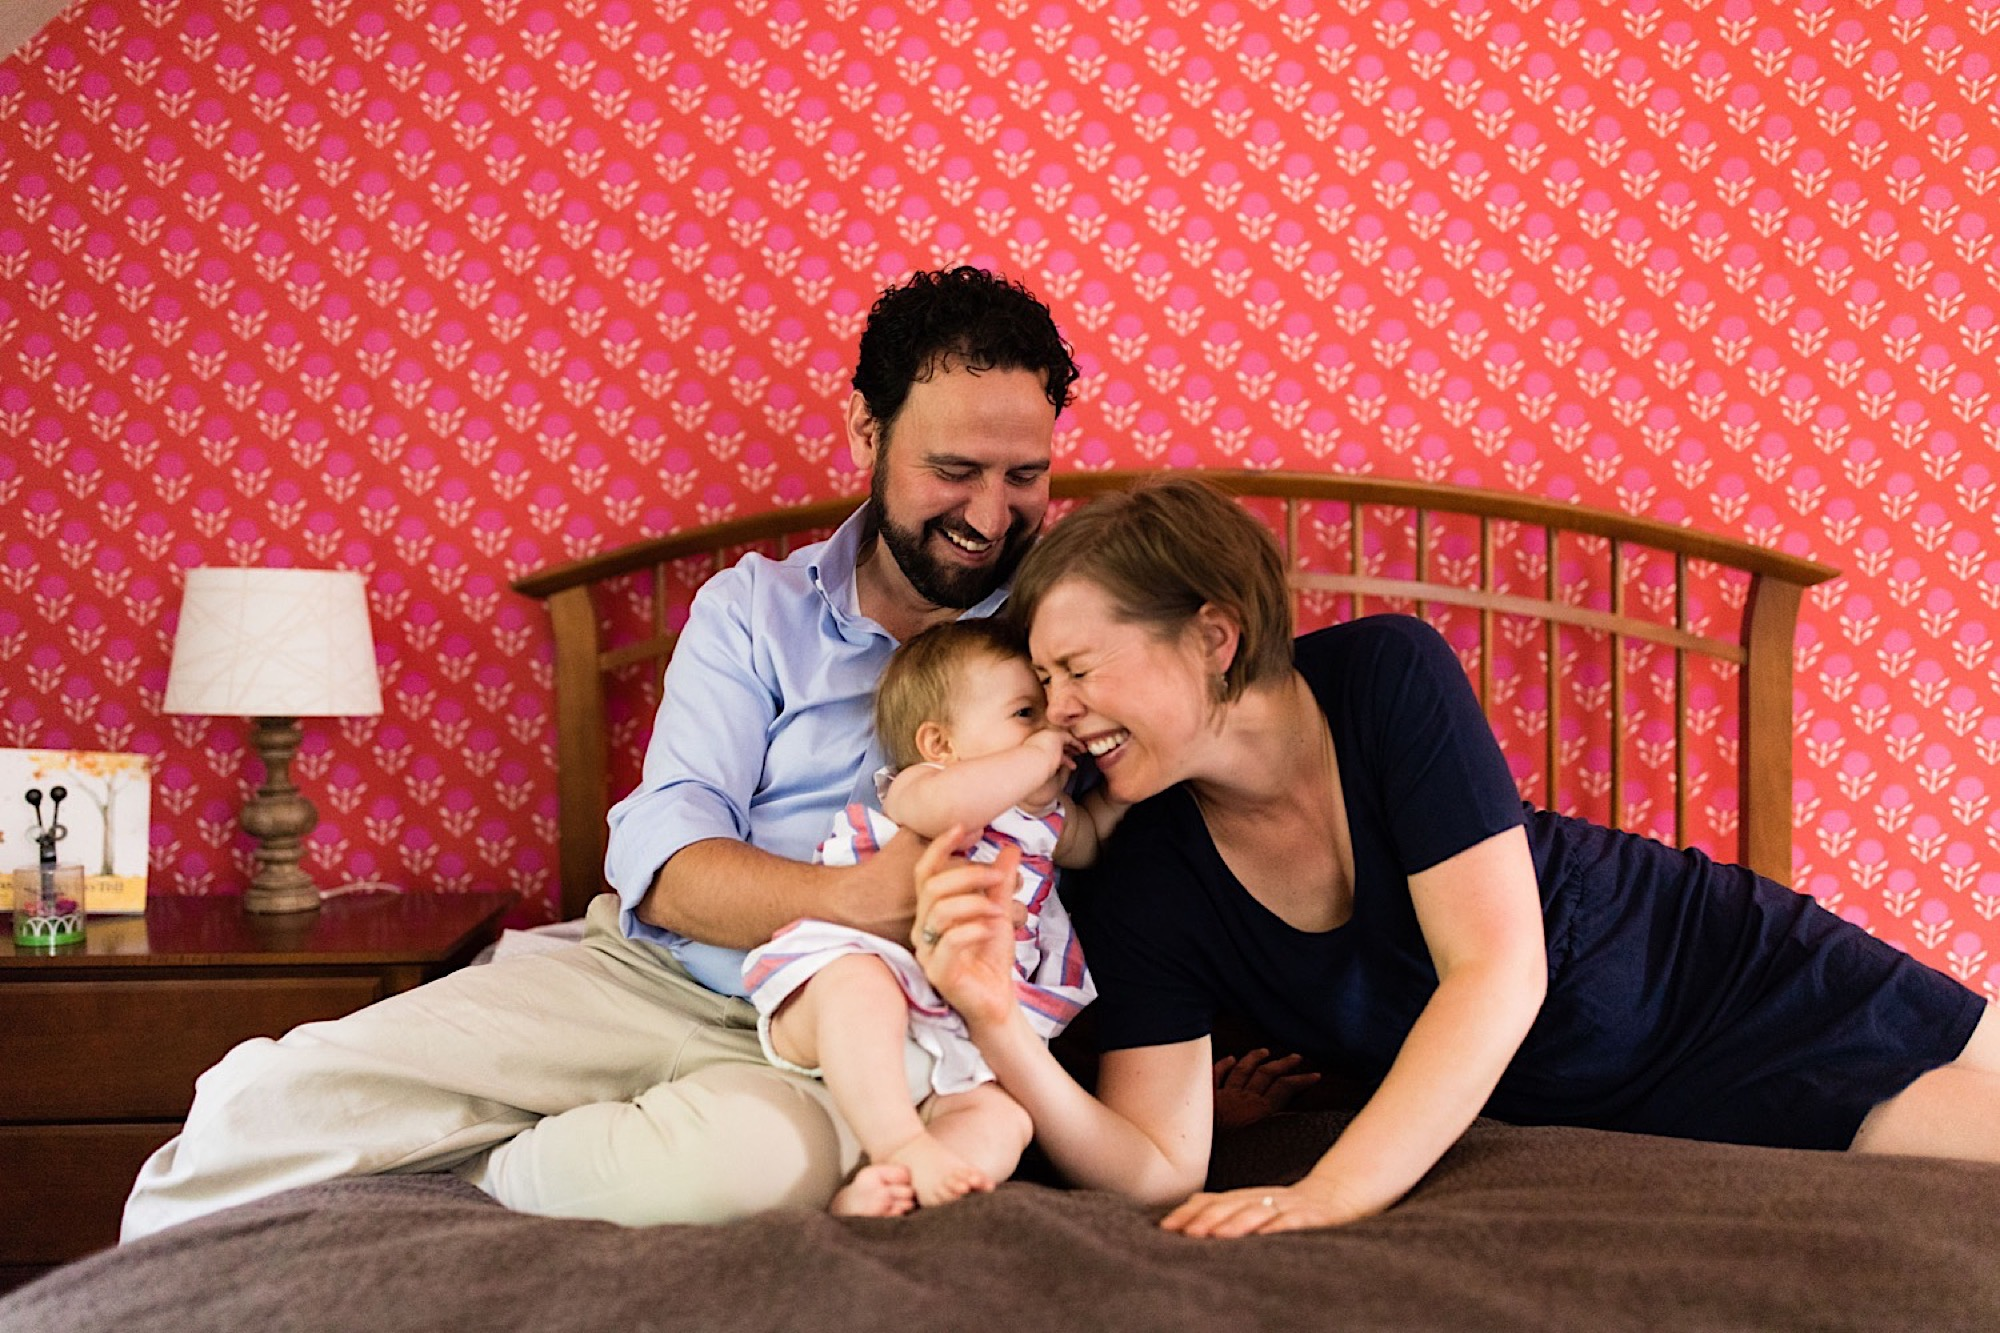 family snuggling on bed smiling at new baby